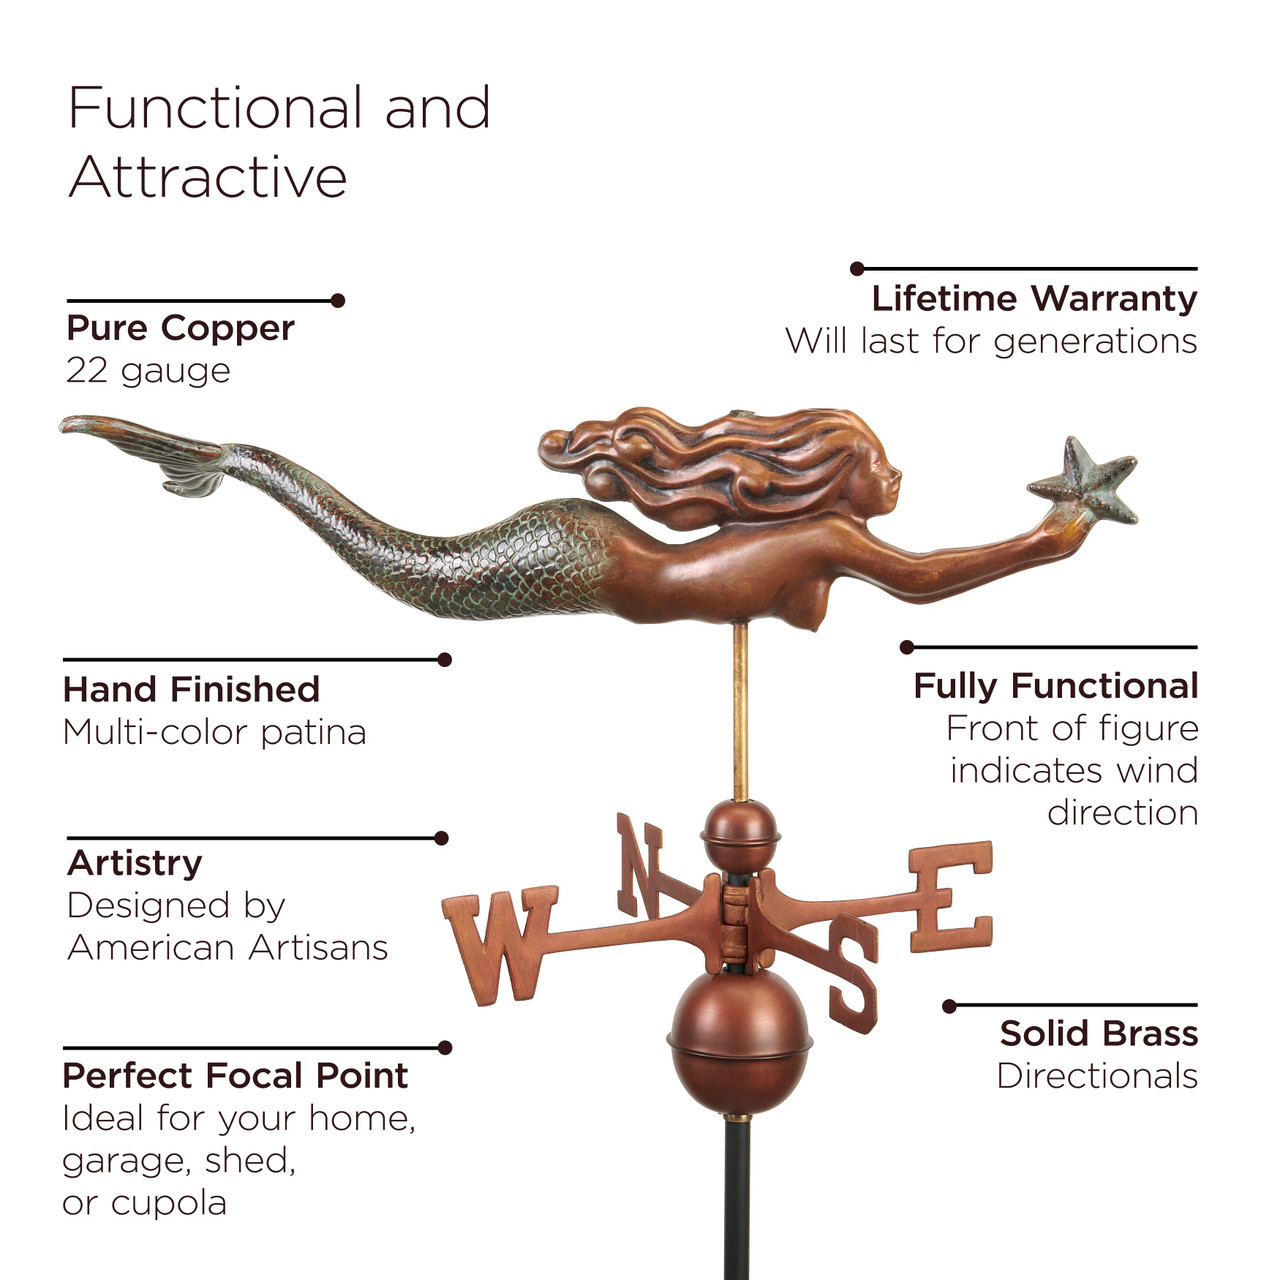 Mermaid with Starfish Weathervane -  Pure Copper Hand Finished Multi-Color Patina by Good Directions